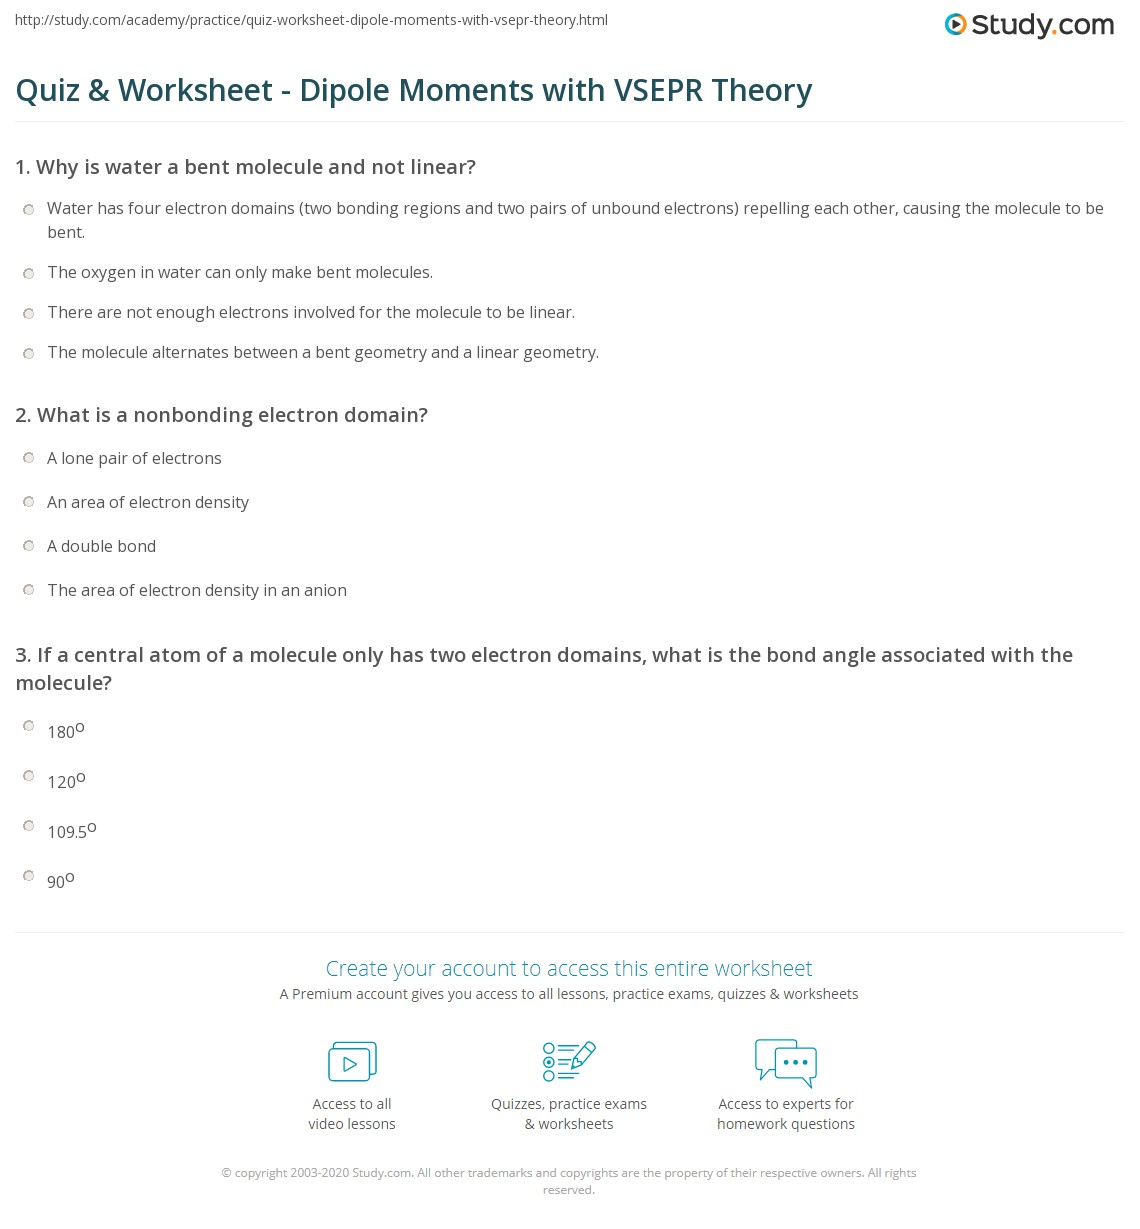 Printables Vsepr Theory Worksheet quiz worksheet dipole moments with vsepr theory study com print molecule shapes worksheet